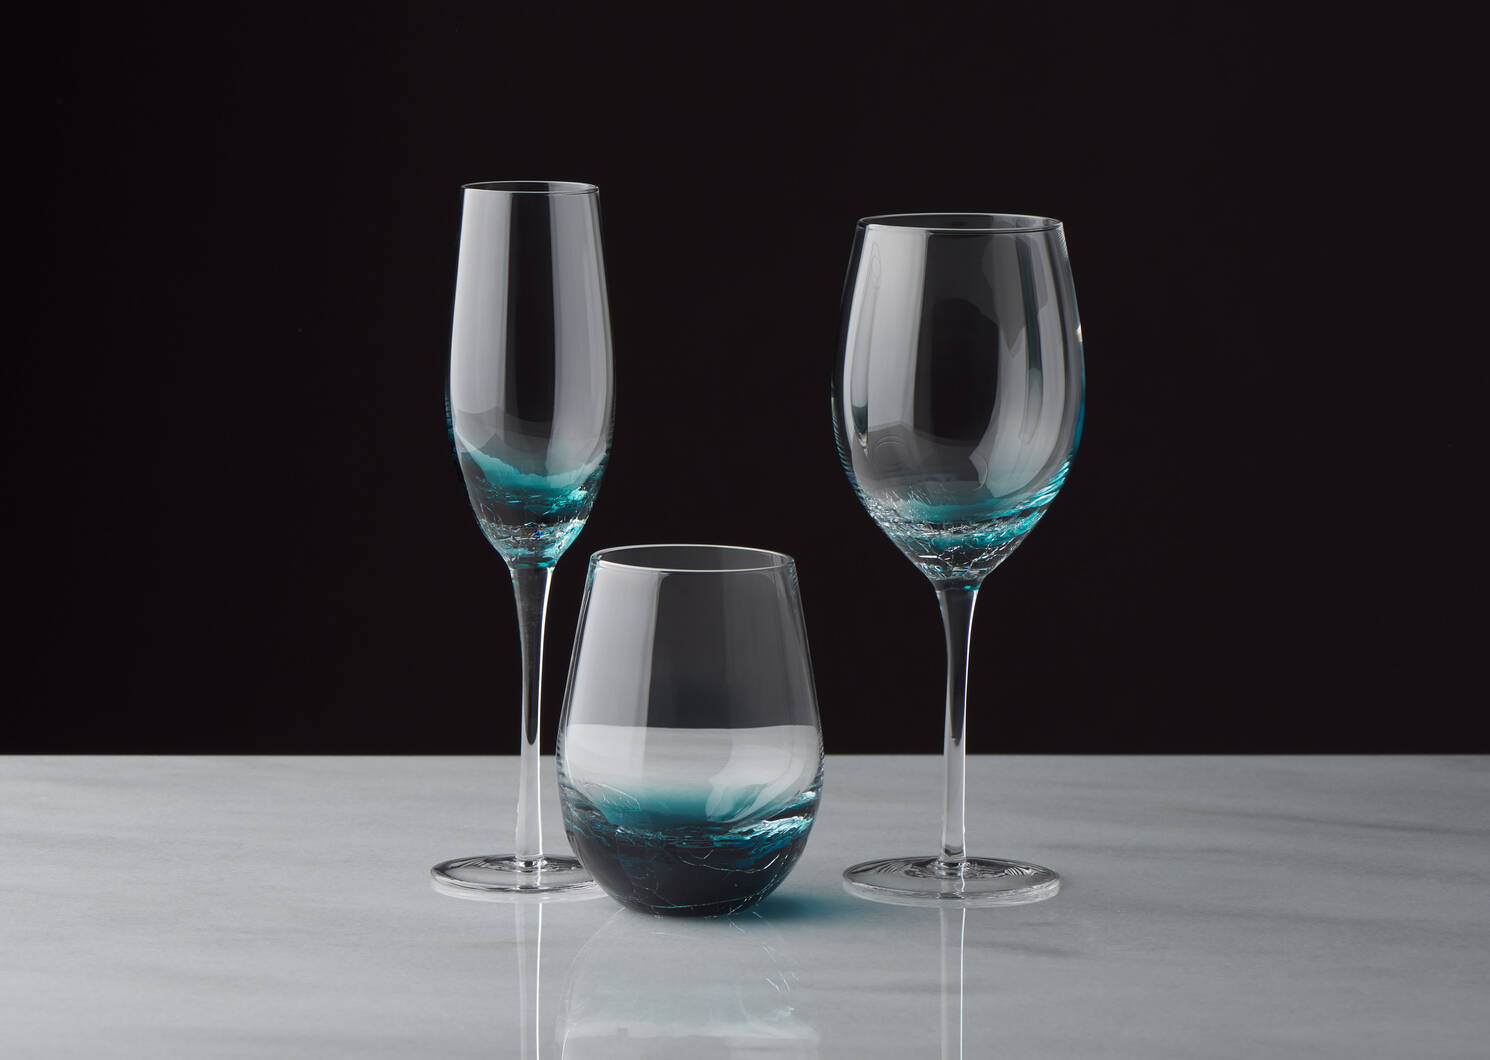 Lively Wine Glass Teal